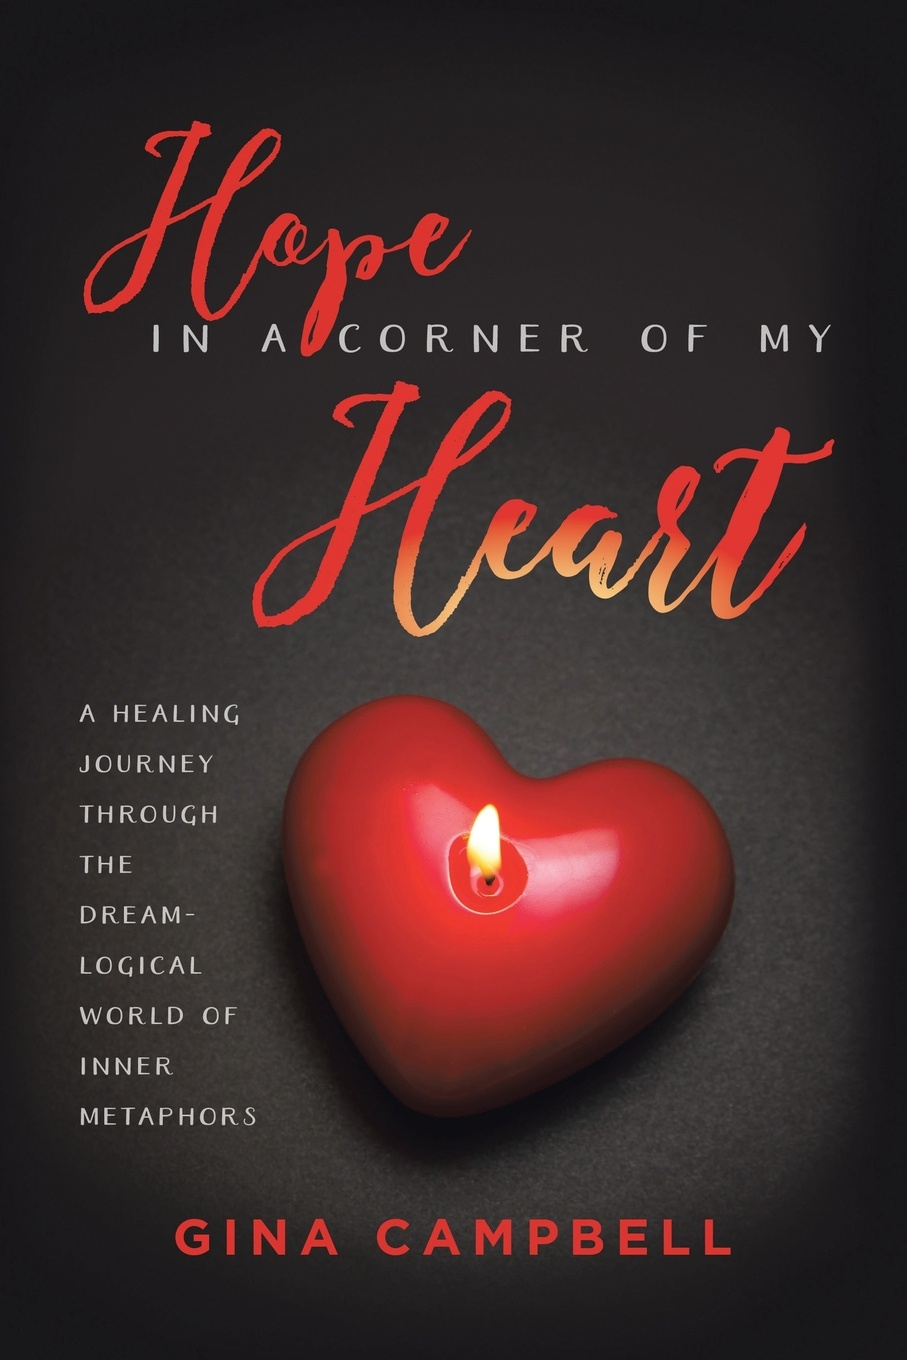 Gina Campbell Hope in a Corner of My Heart. A Healing Journey Through the Dream-Logical World of Inner Metaphors julia james tycoon s ring of convenience